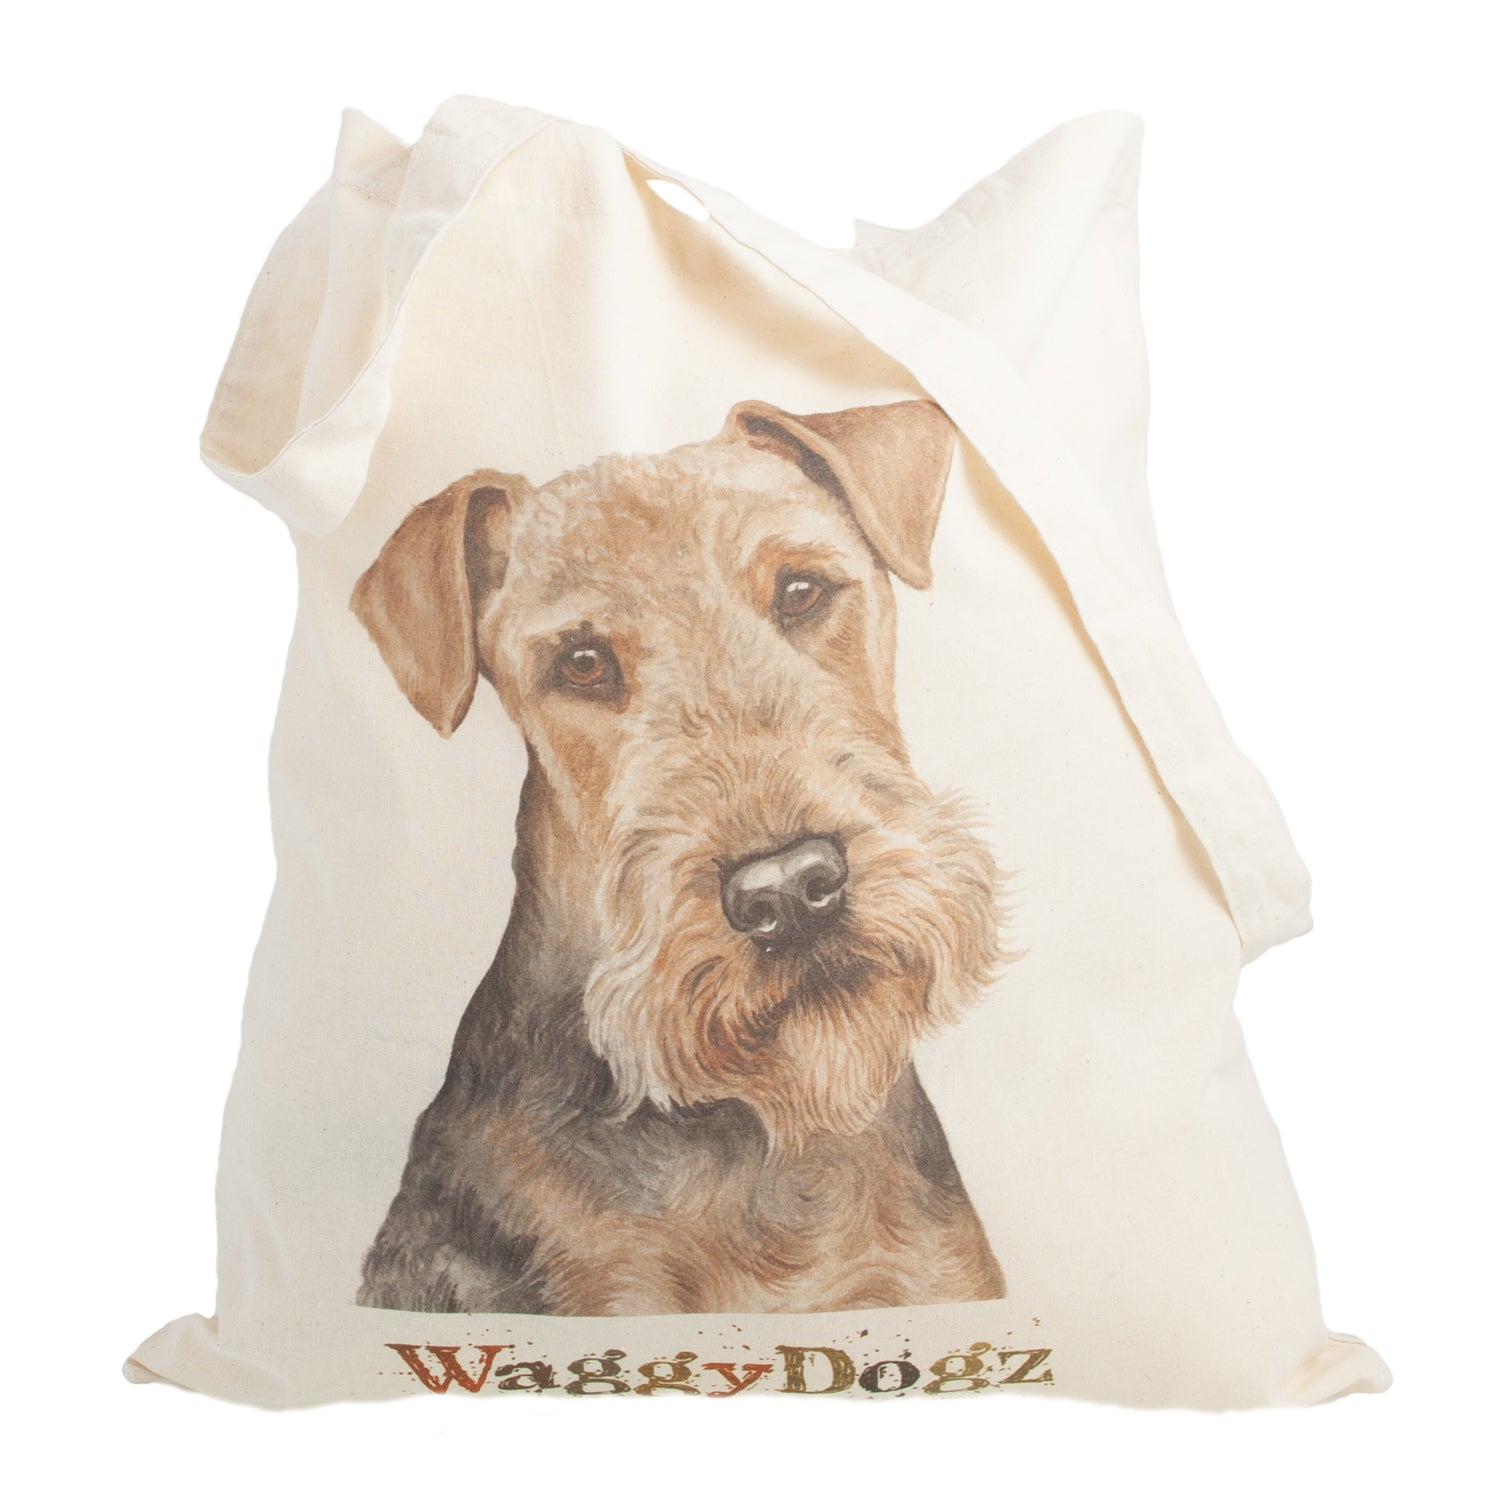 Dog Lover Gifts available at Dog Krazy Gifts. Airedale Tote Bag, part of our Christine Varley collection – available at www.dogkrazygifts.co.uk